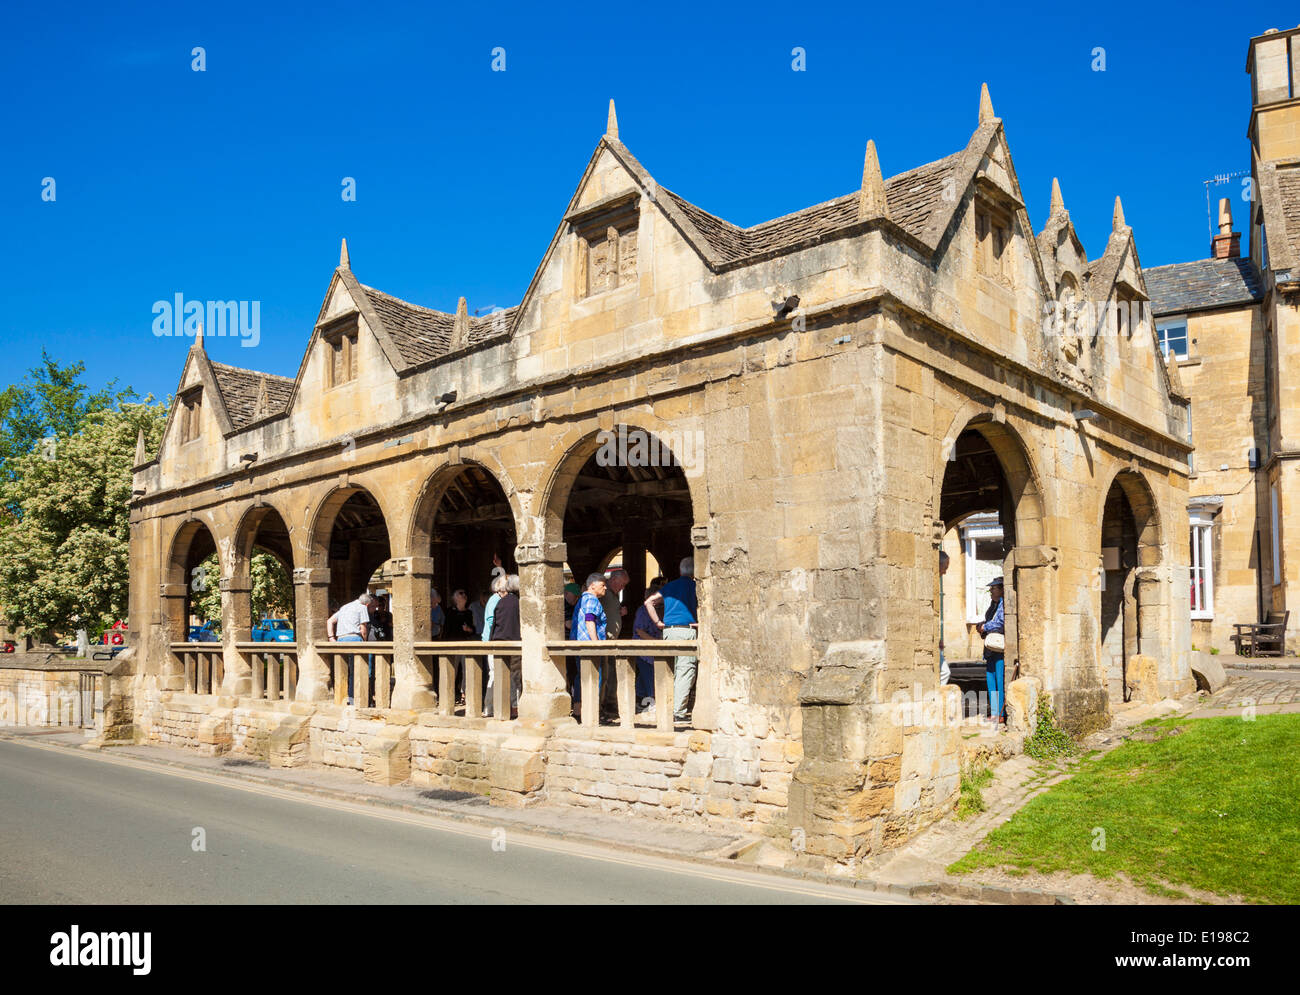 Chipping Campden Market Hall built 1646 High Street Chipping Campden The Cotswolds Gloucestershire England UK EU - Stock Image